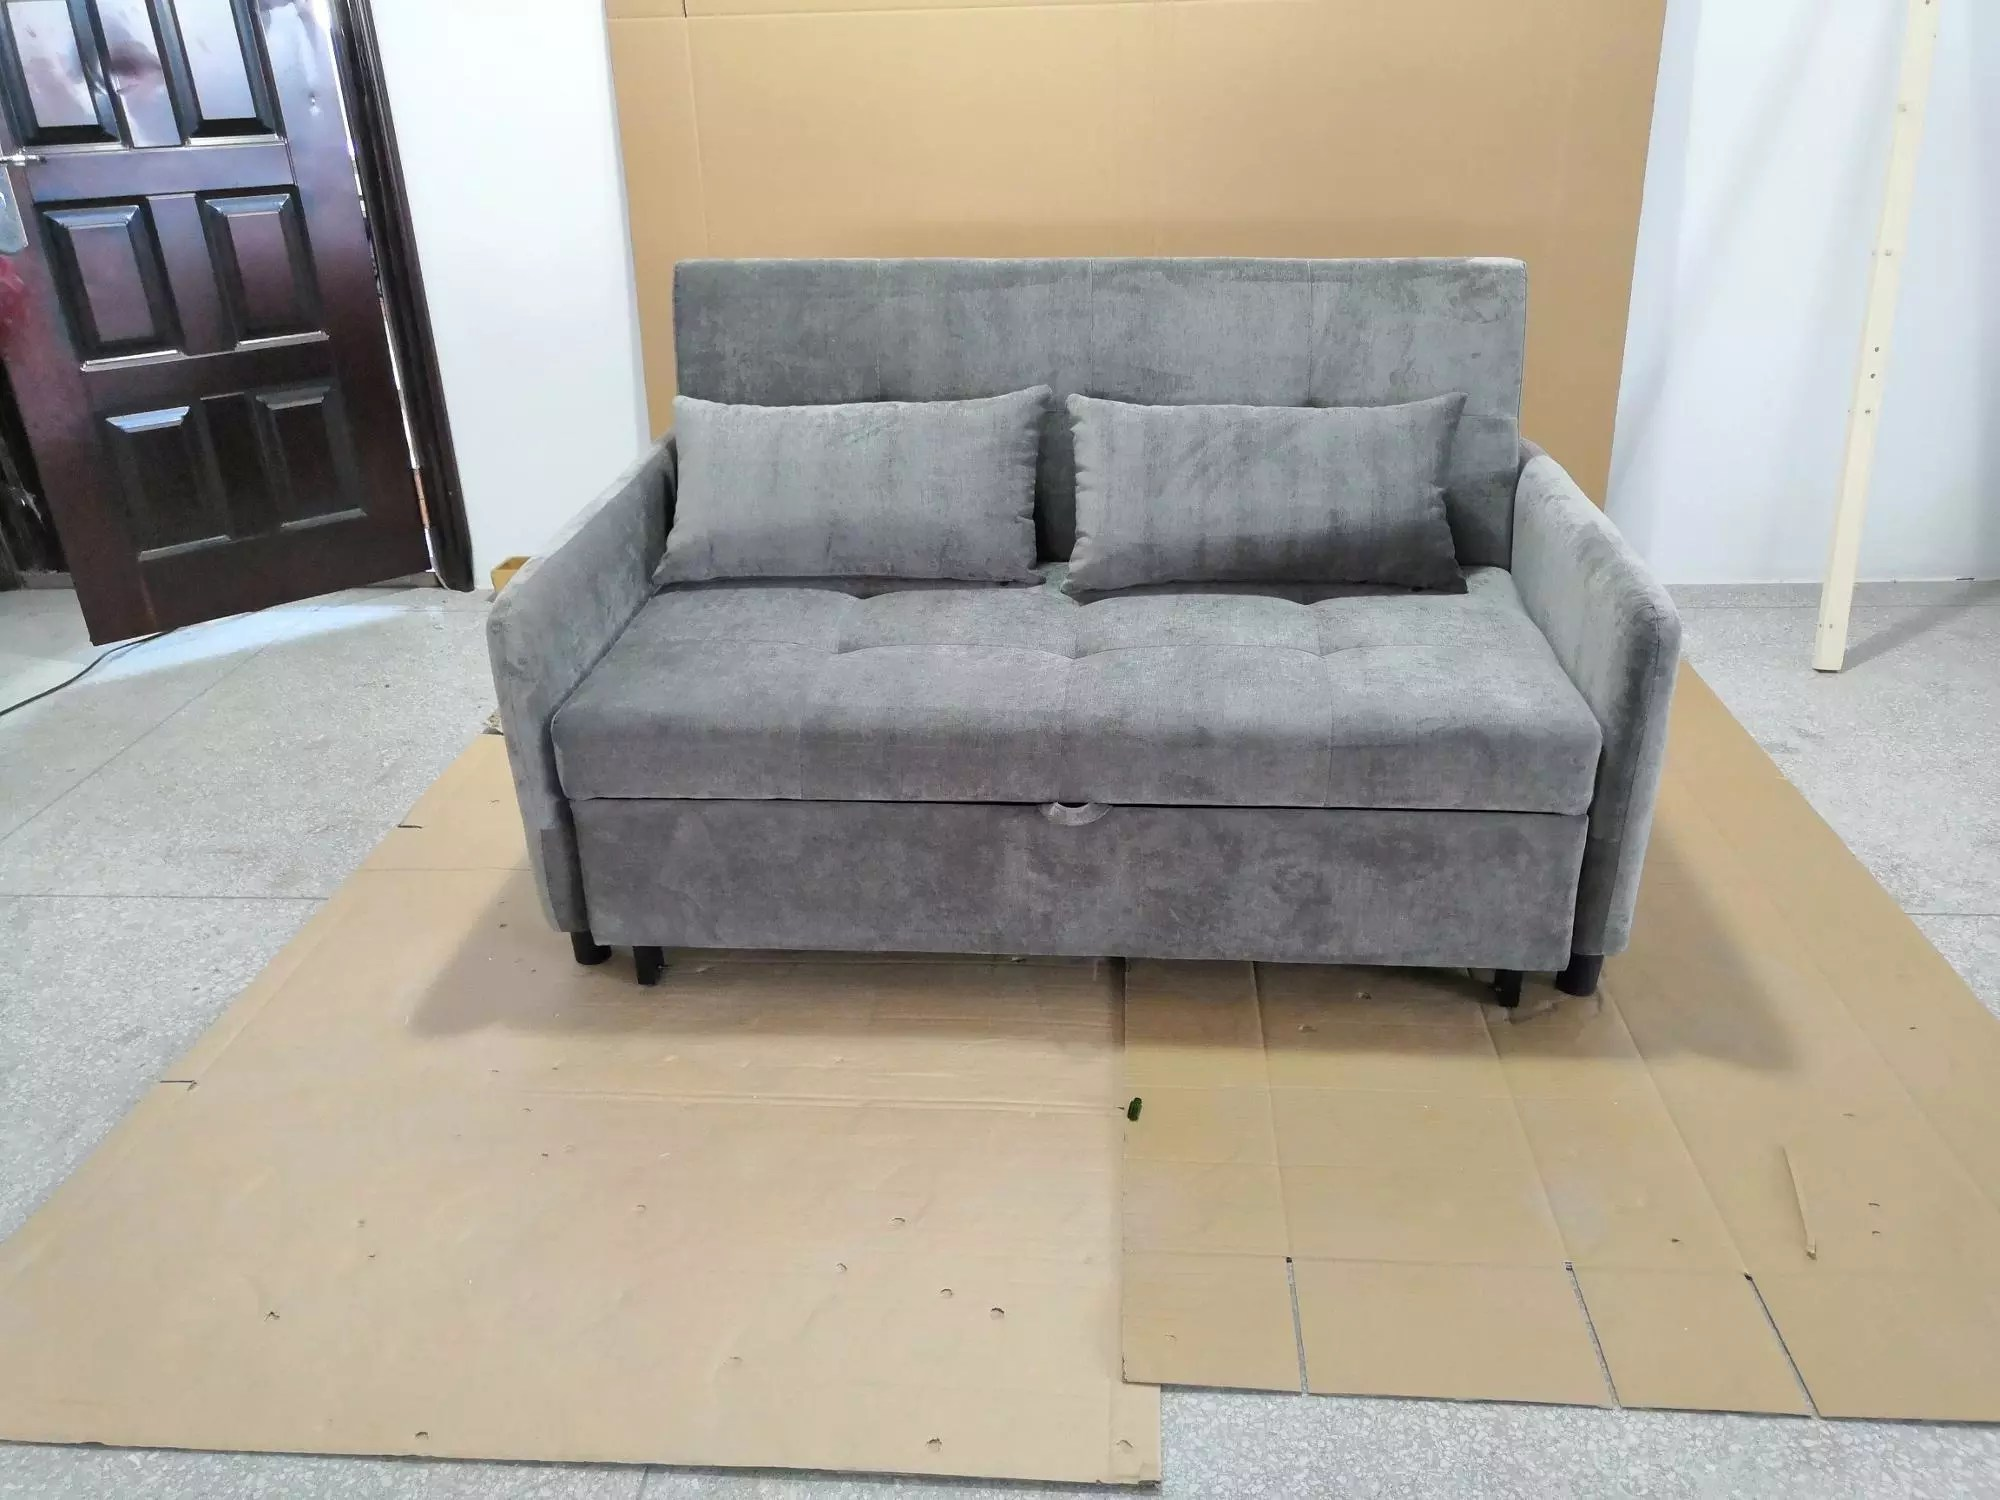 foldable sofa chair malaysia old dining room chairs futon cum bed furniture buy